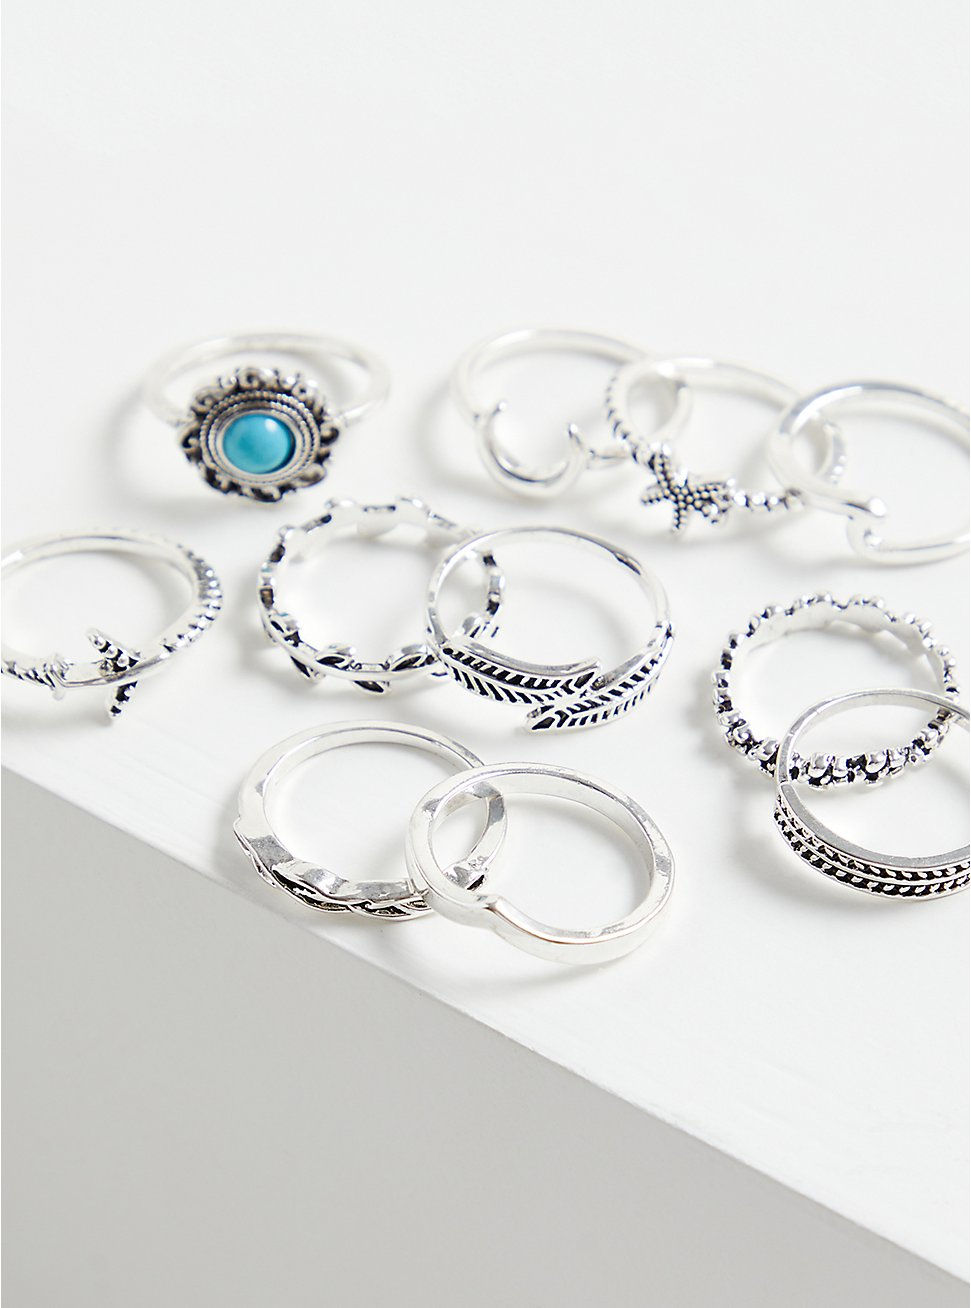 Silver-Tone Faux Turquoise Ring Set - Set of 11, TURQUOISE, hi-res